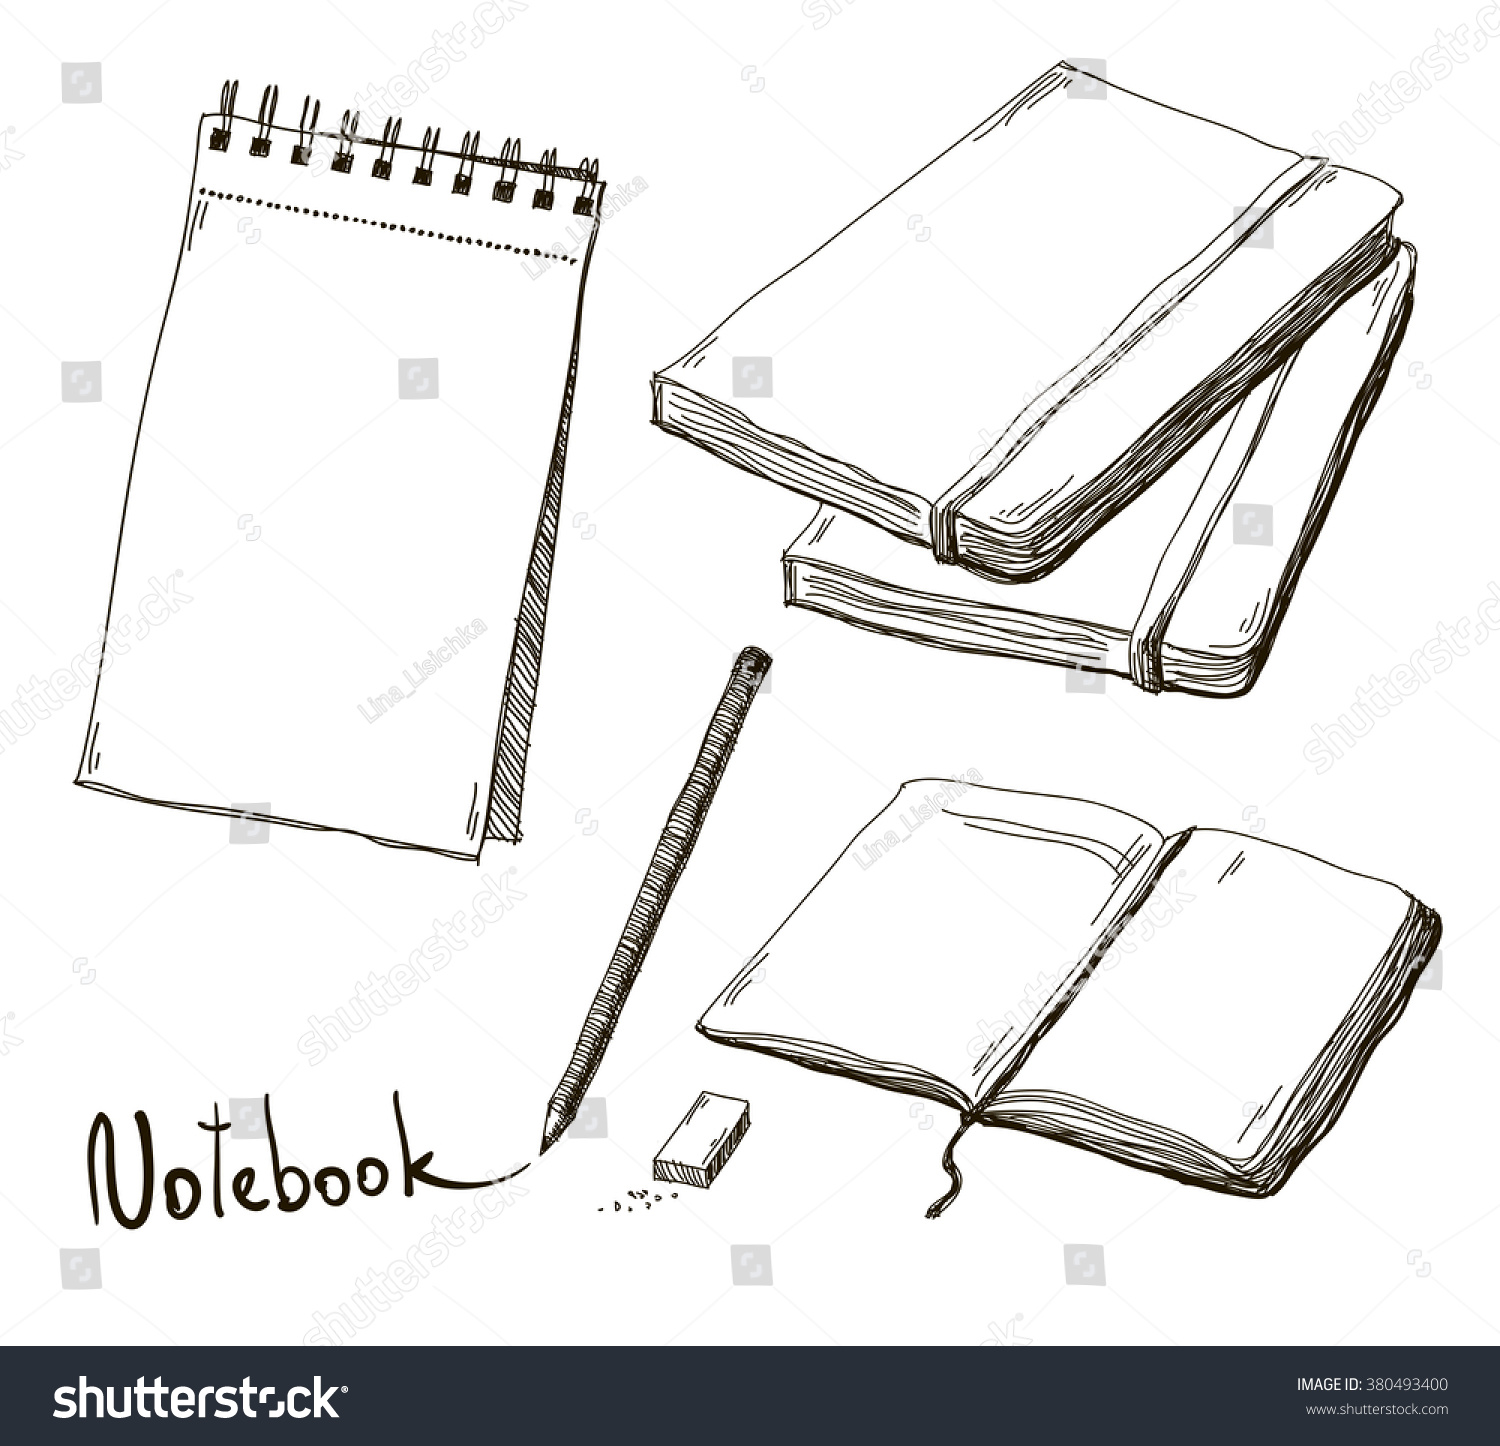 Sketch of notebooks with pencil and eraser vector